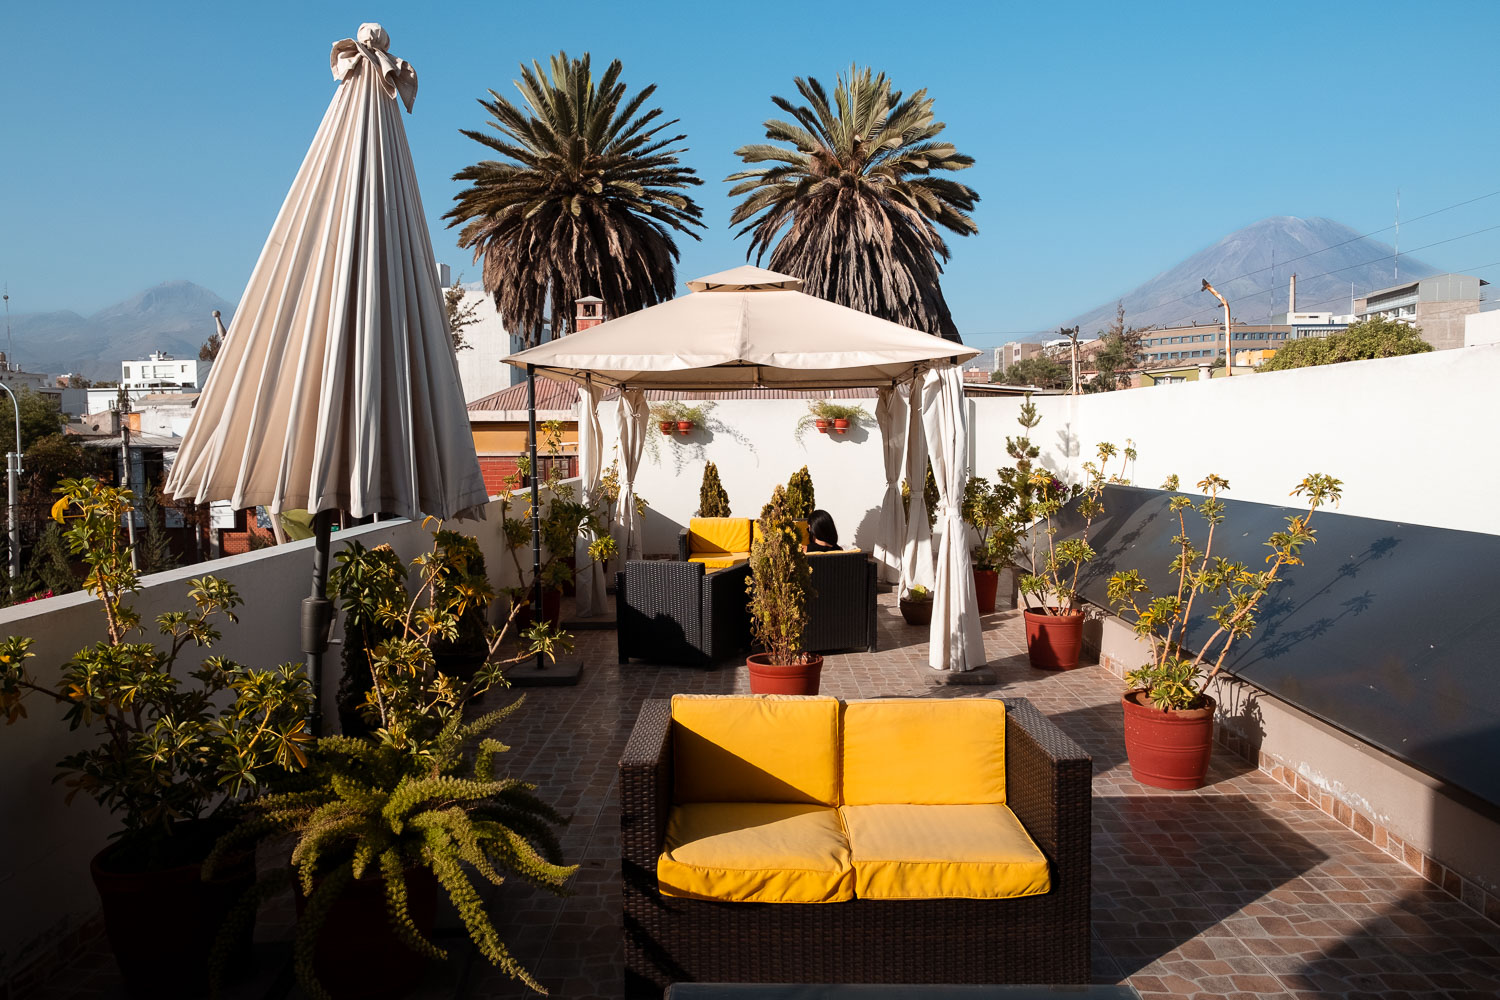 """Rooftop of Beausejour Boutique Hotel Arequipa, Peru. Travel photography and guide by © Natasha Lequepeys for """"And Then I Met Yoko"""". #peru #photoblog #fujifilm"""